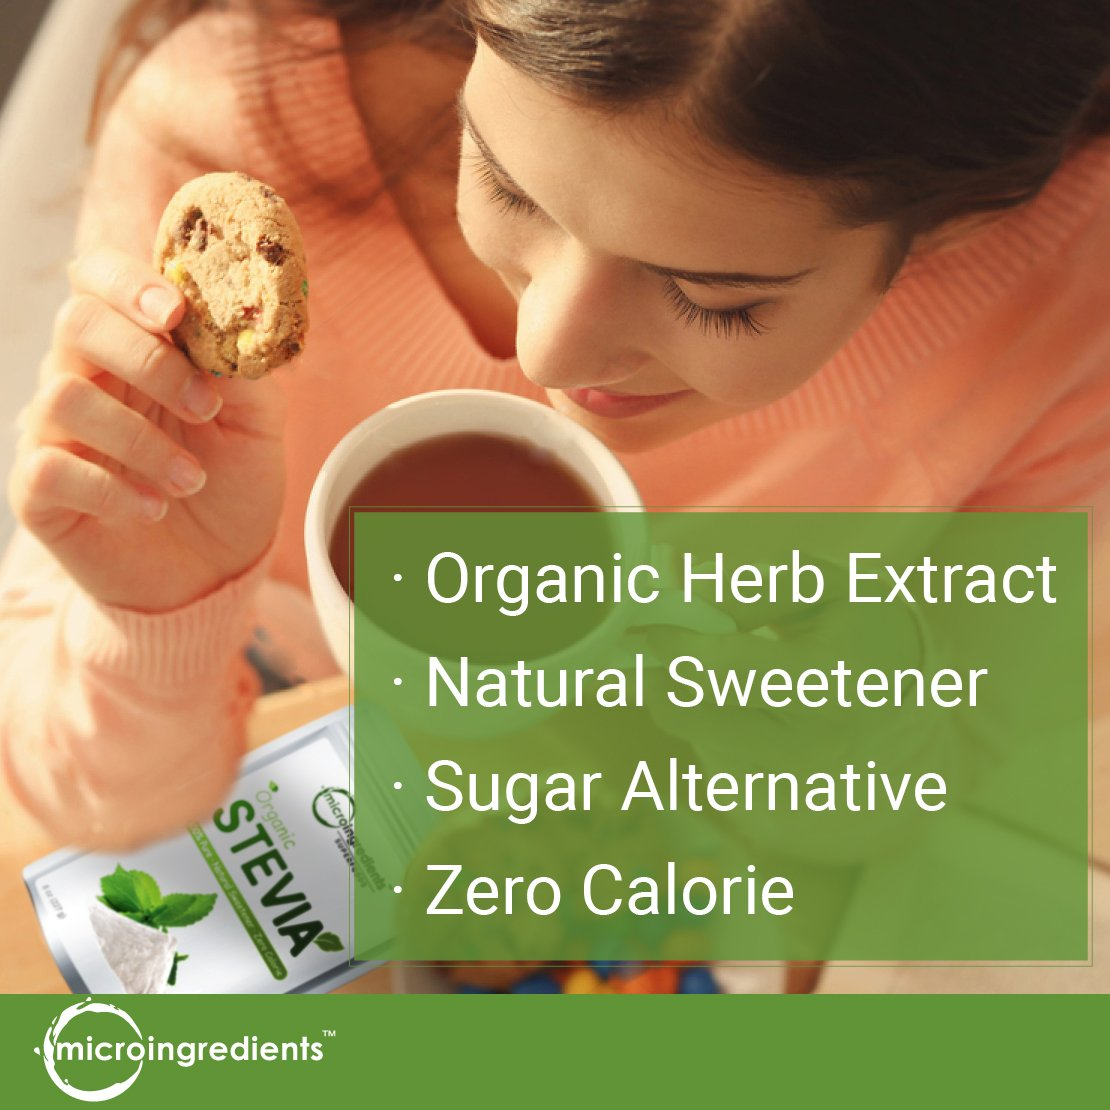 Pure Organic Stevia Powder, 8 Ounce, 1418 Serving, 0 Calorie, Natural Sweetener and Sugar Alternative, No GMOs and Vegan Friendly by Micro Ingredients (Image #2)